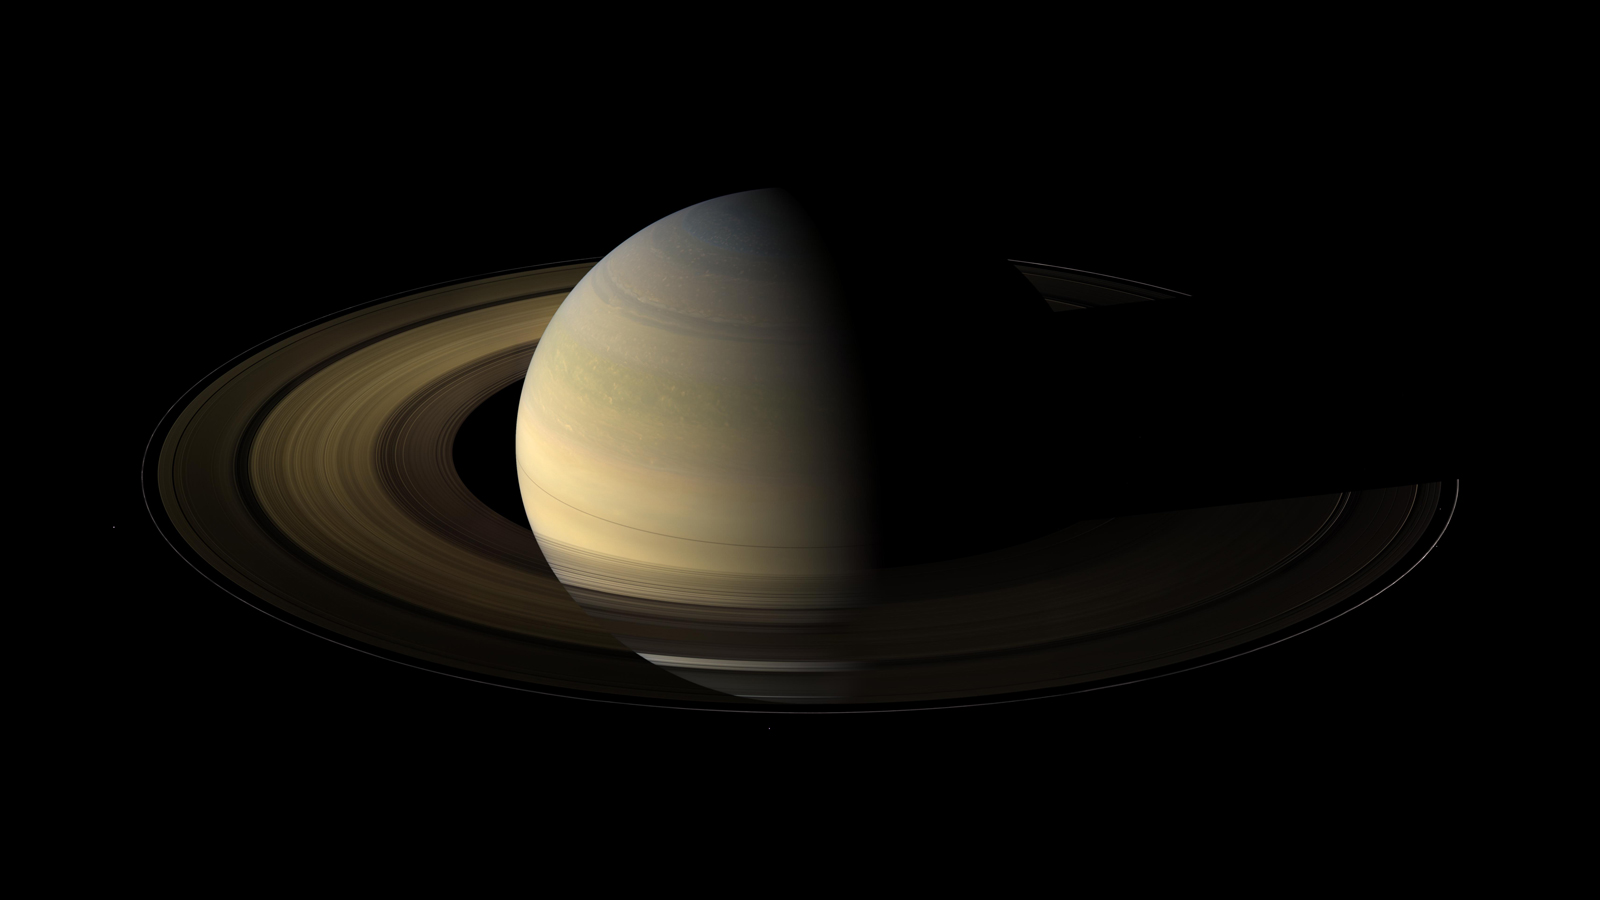 New Exoplanet S Rings Span 200 Times Wider Than Saturn S